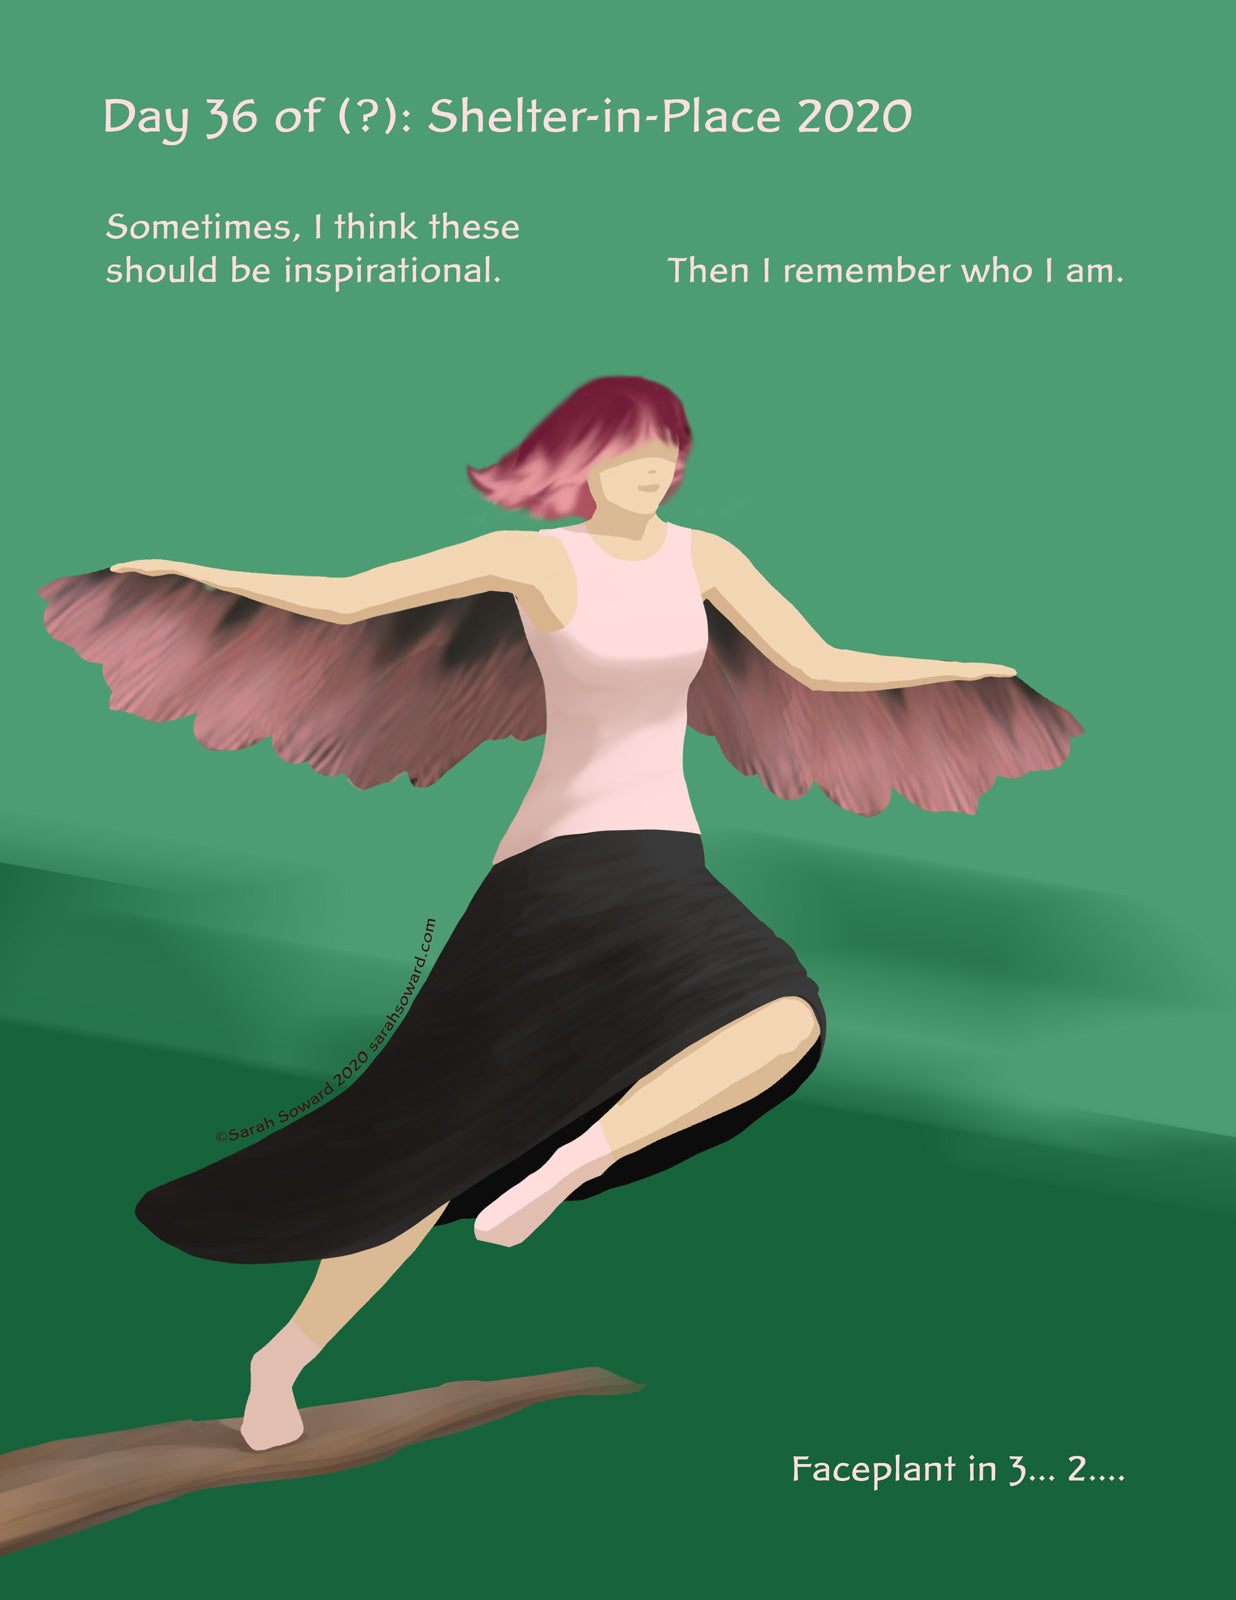 Woman morphed into a bit of a bird, sort of, about to take flight from a branch. The text on the image reads  Sometimes, I think these should be inspirational. Then I remember who I am. Faceplant in 3... 2....